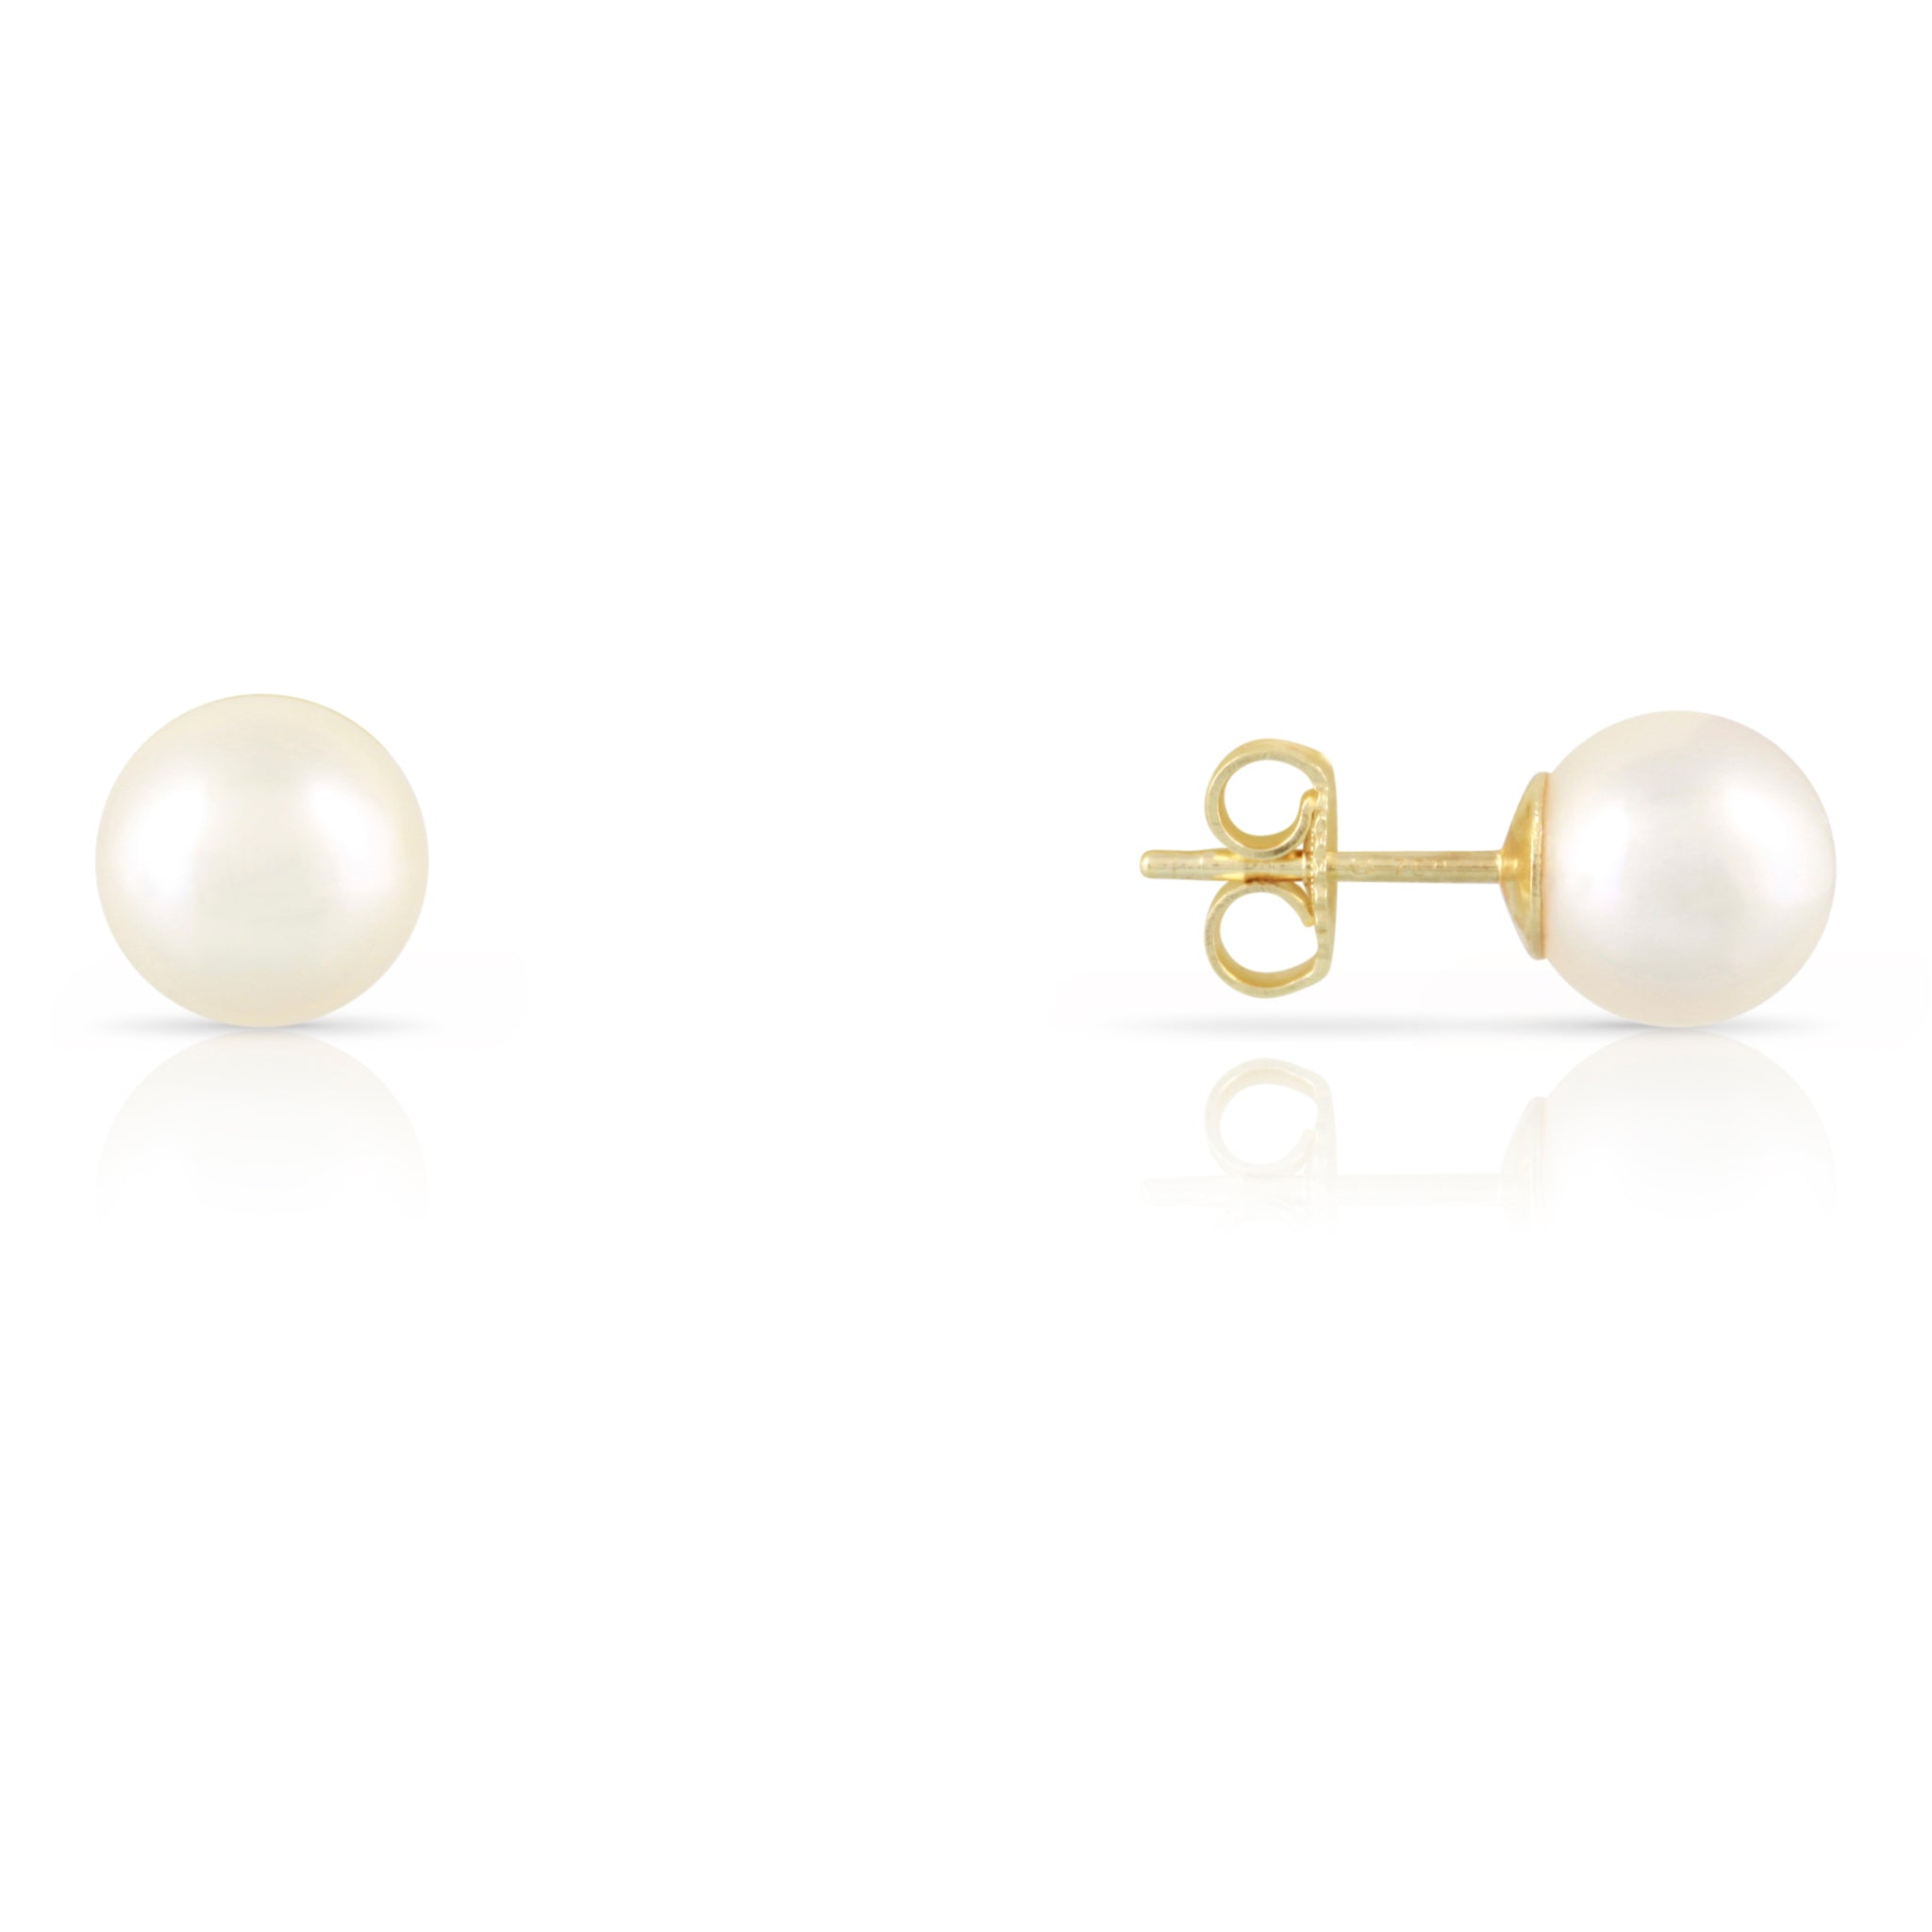 Mikimoto Pearl Stud Earrings | The Ines